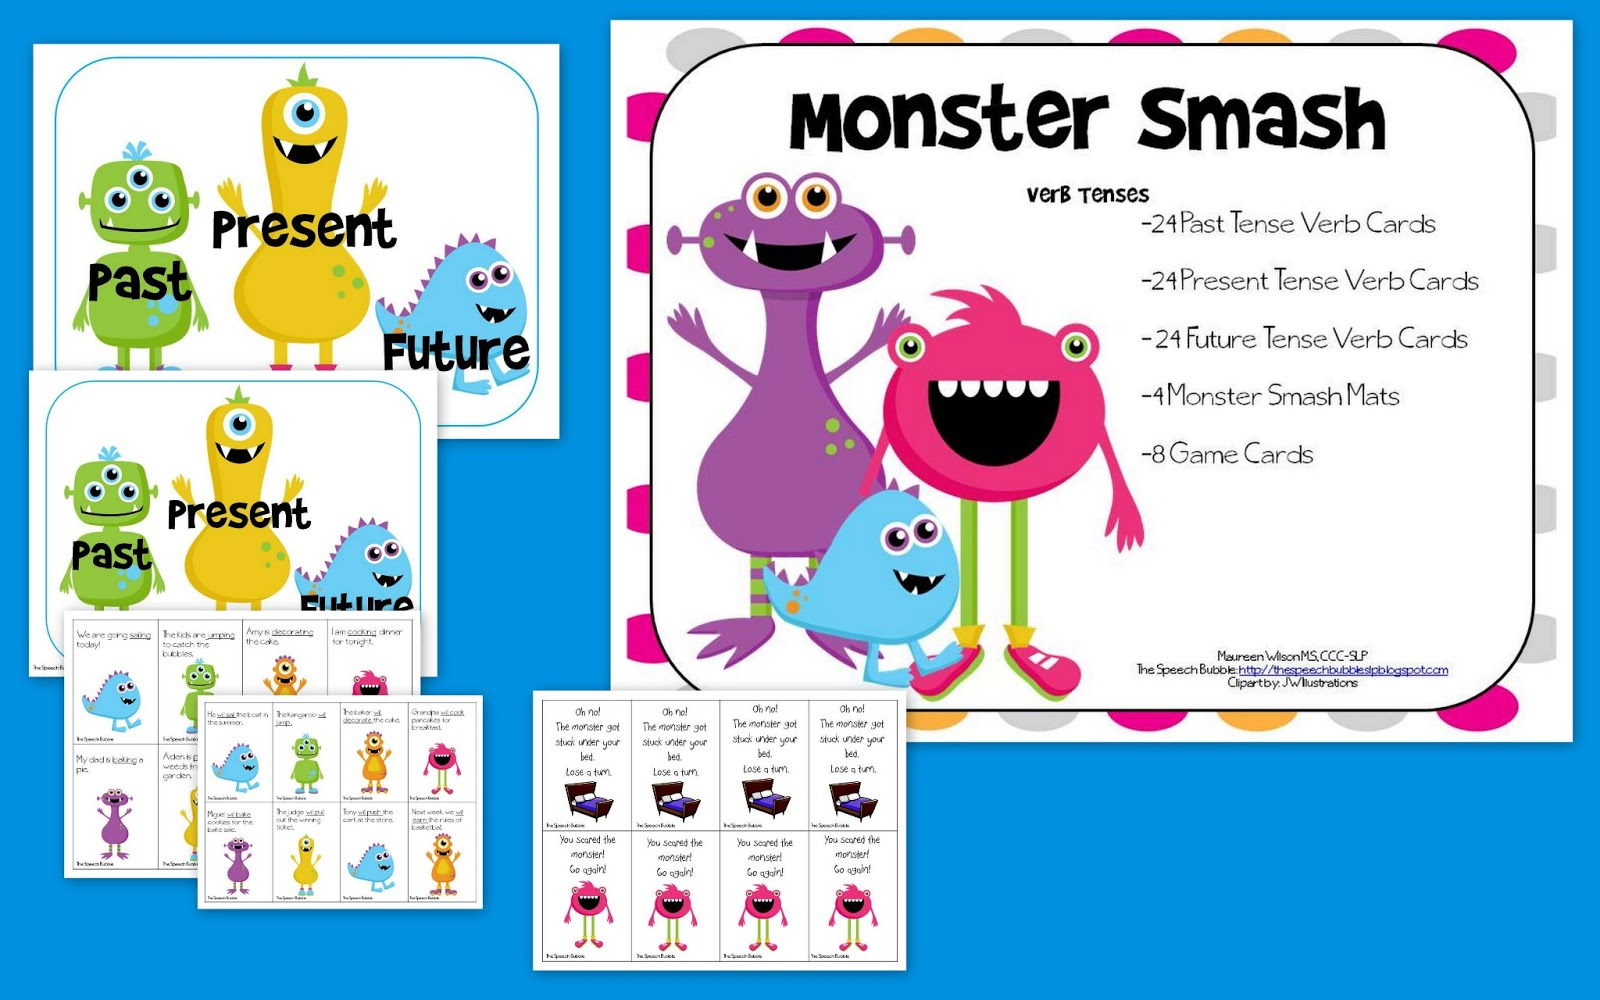 Monster Smash: Verb Tenses